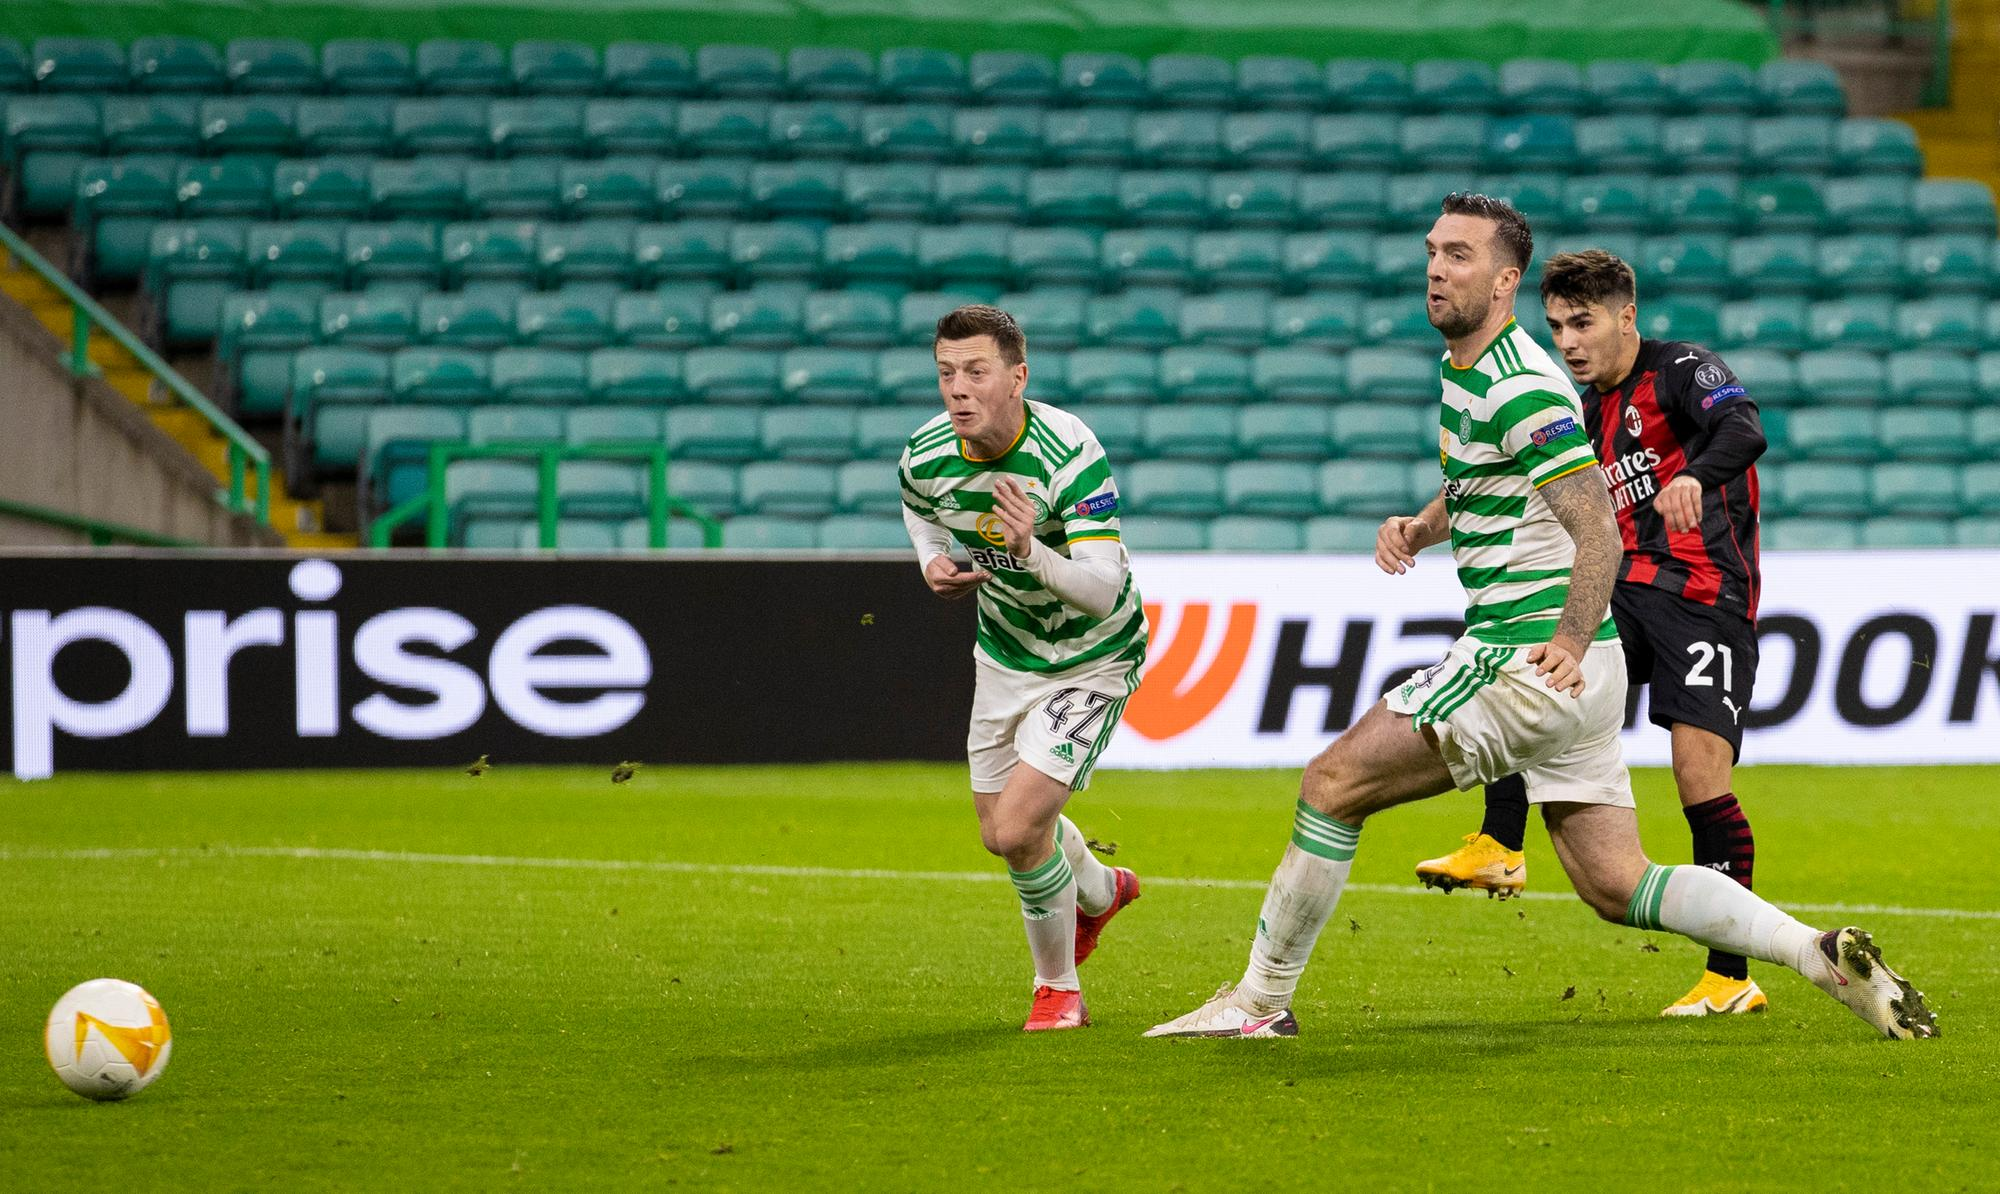 Celtic's change of shape falls just short against Milan - but it's way forward